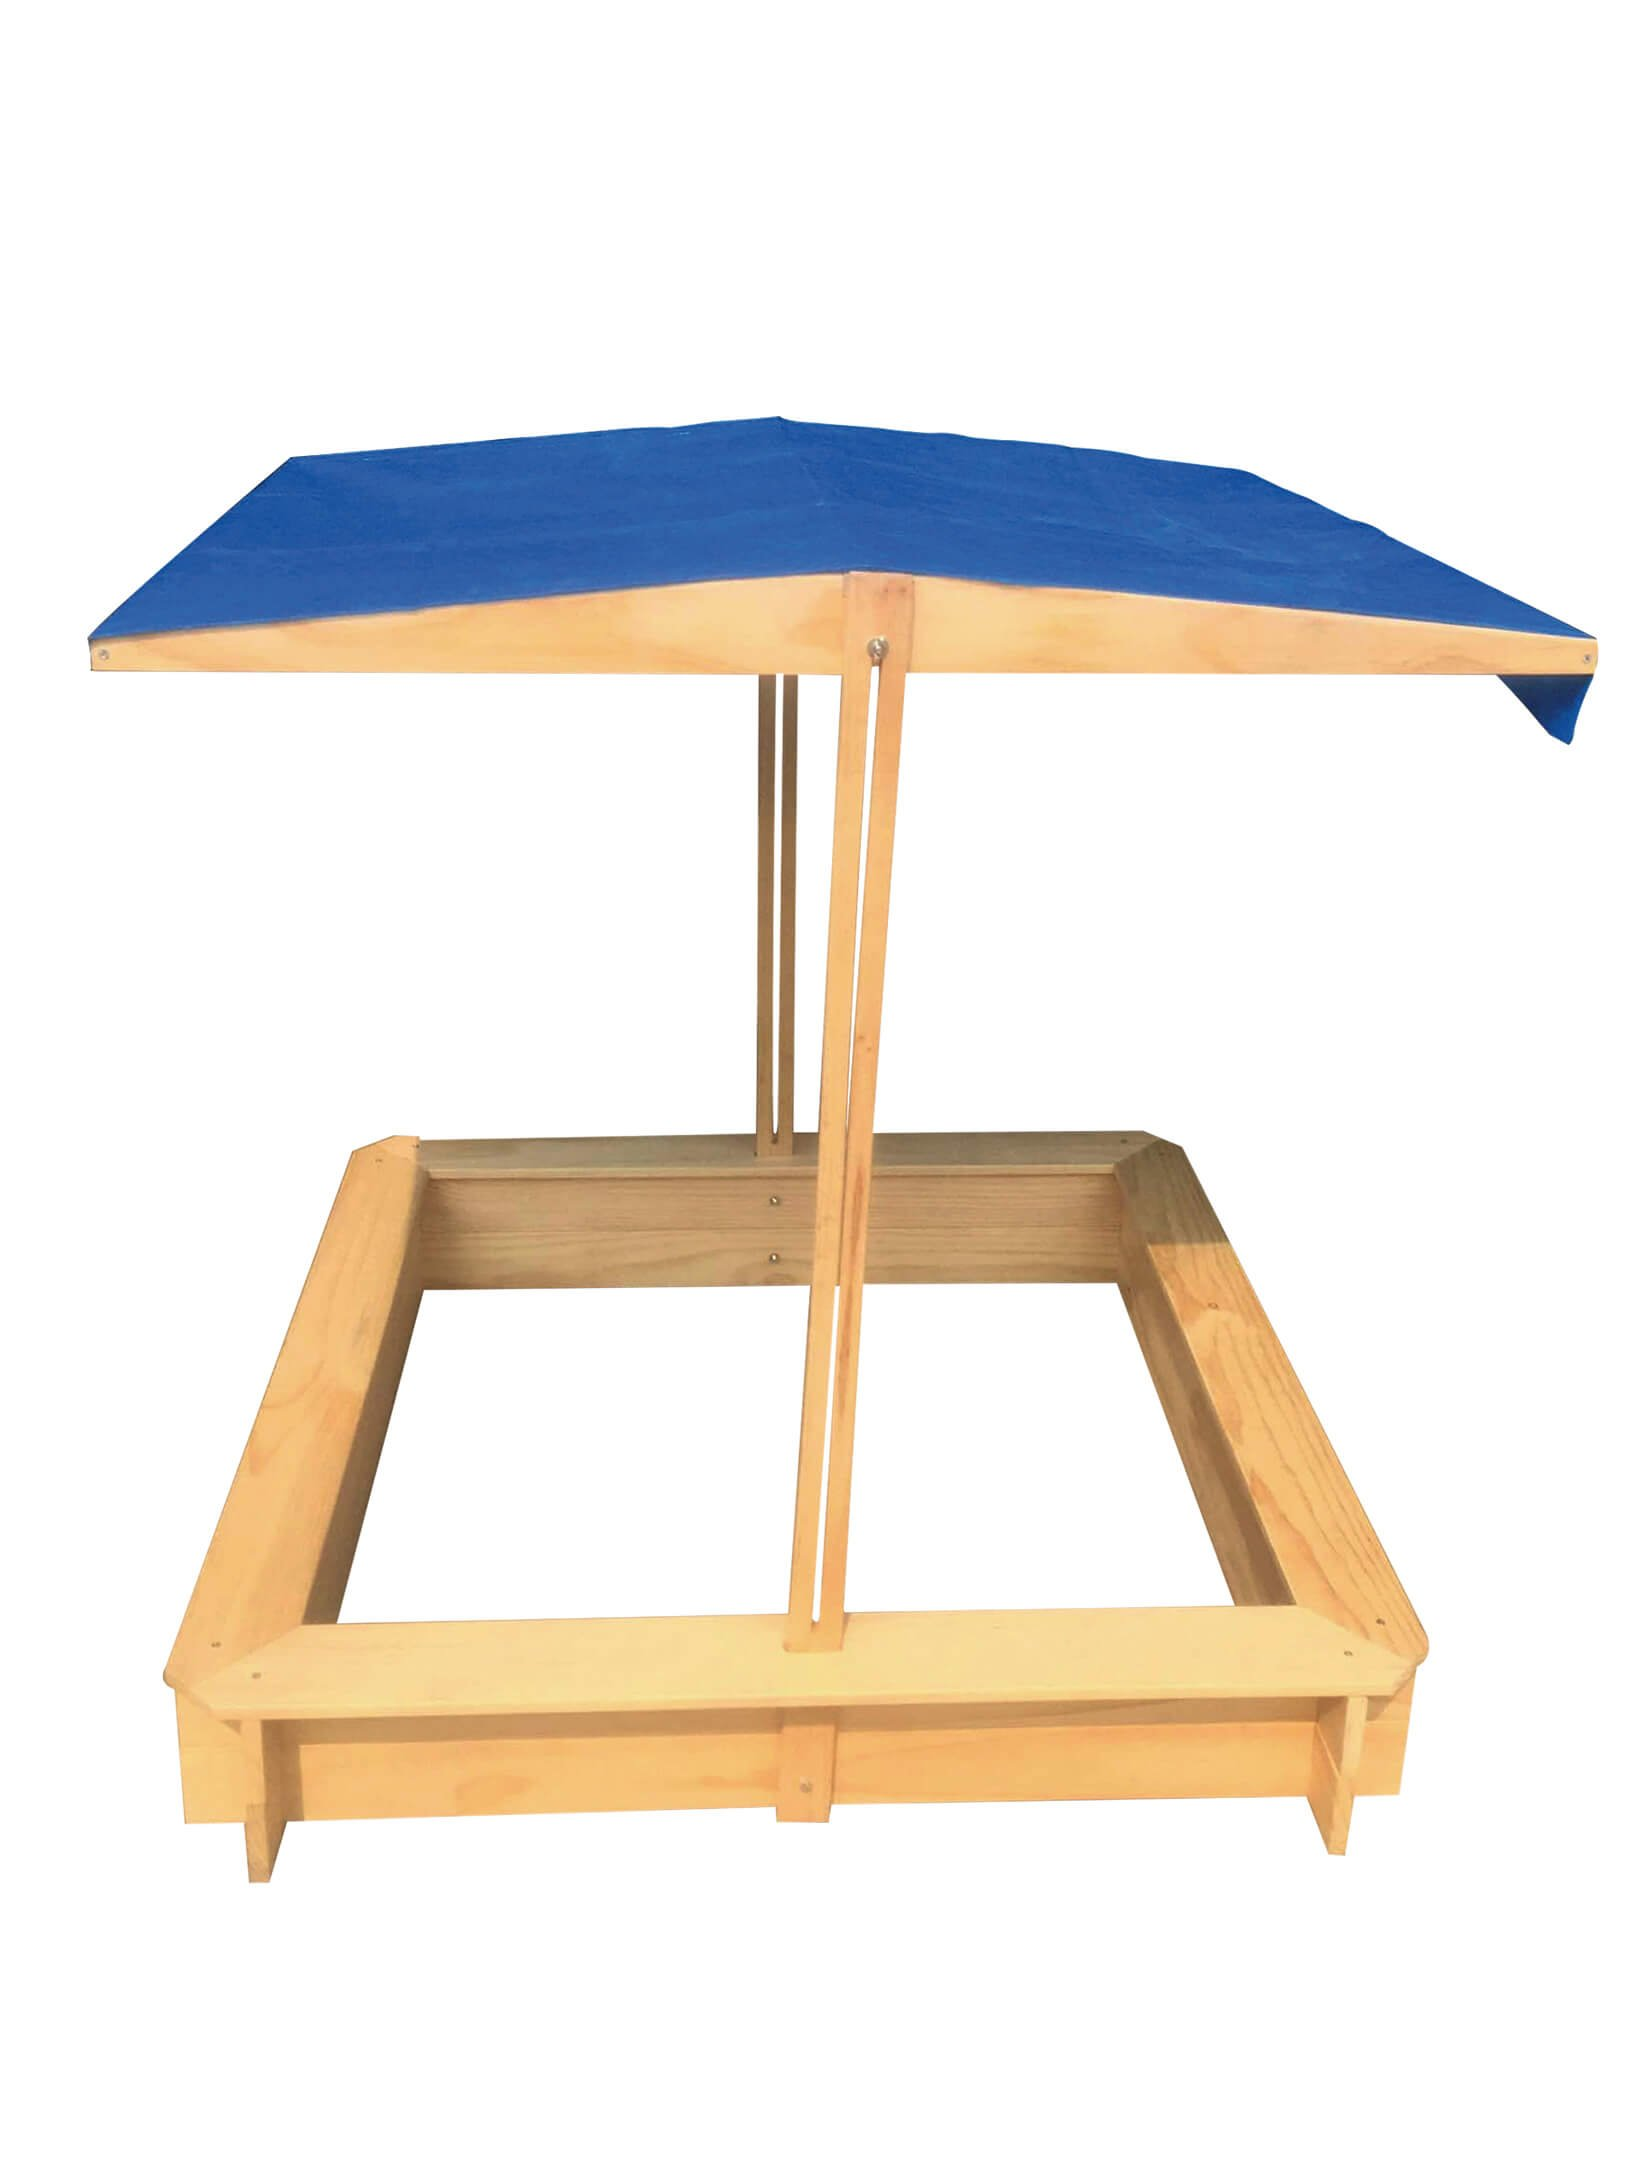 Outdoor Toys - Dune with Adjustable Canopy and 4 Ridges for Rest (kj12104)